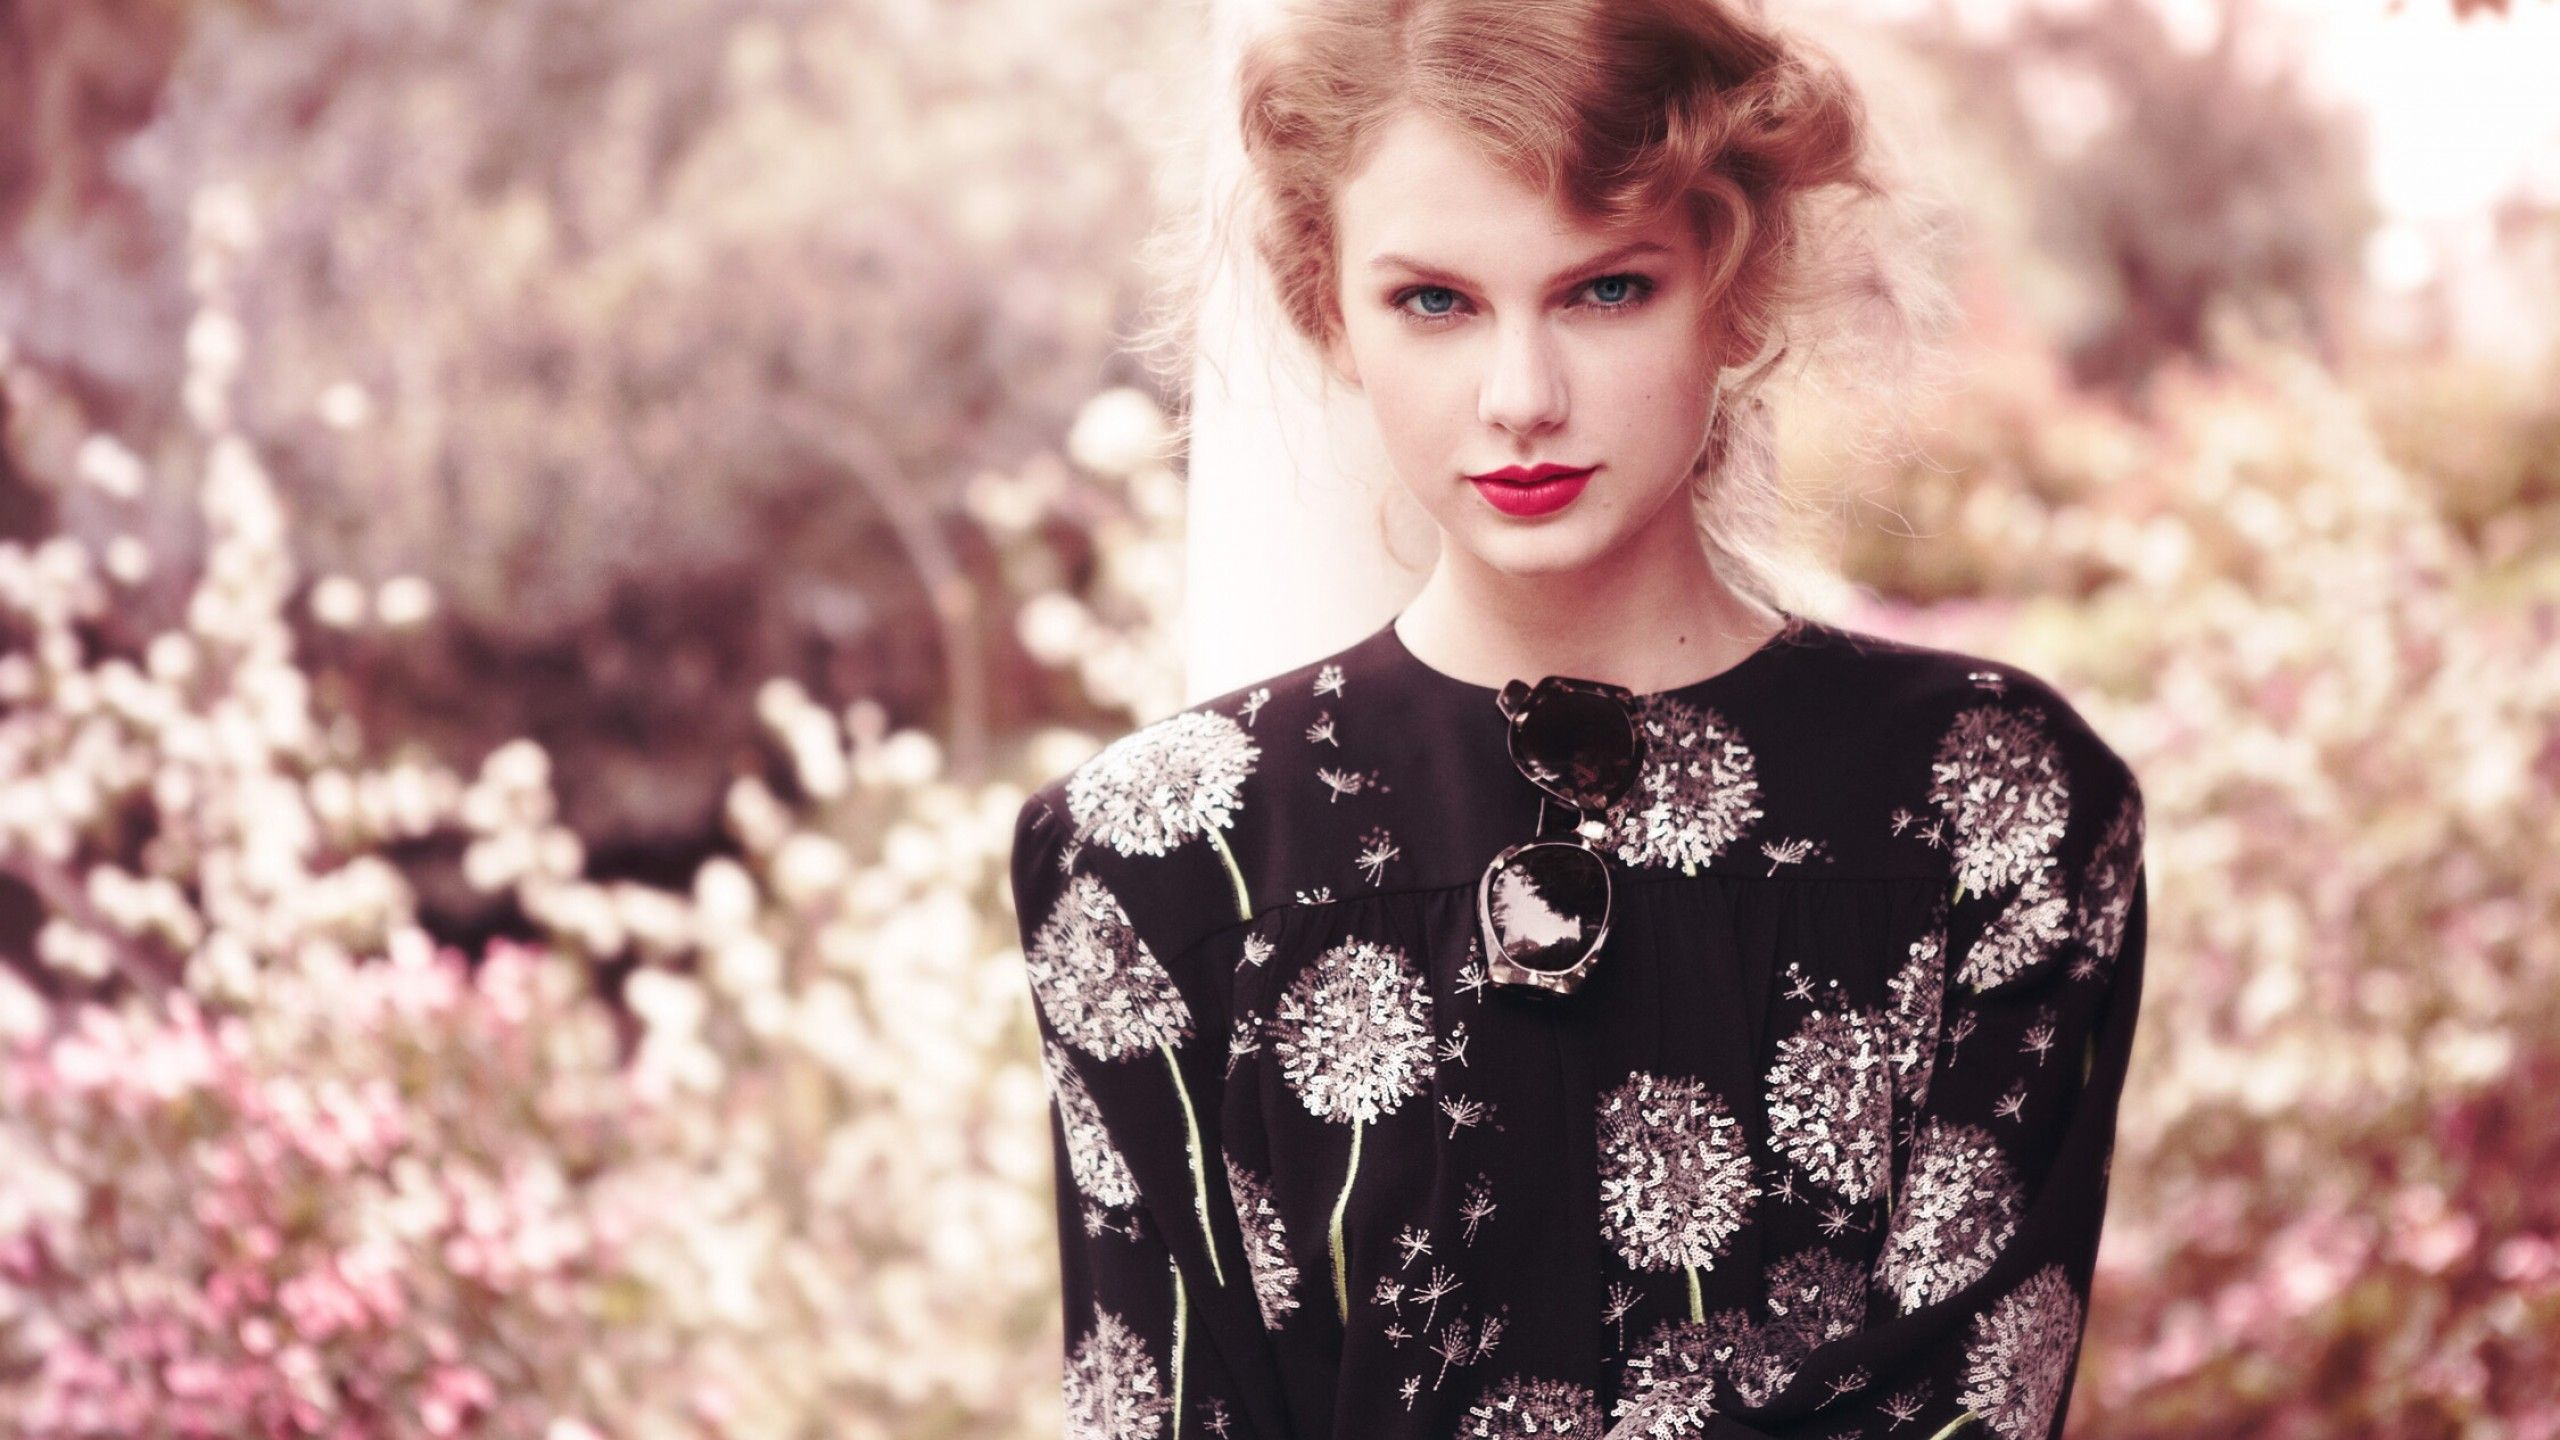 Wallpaper Taylor Swift, Teen Vogue, HD, Celebrities, #3395